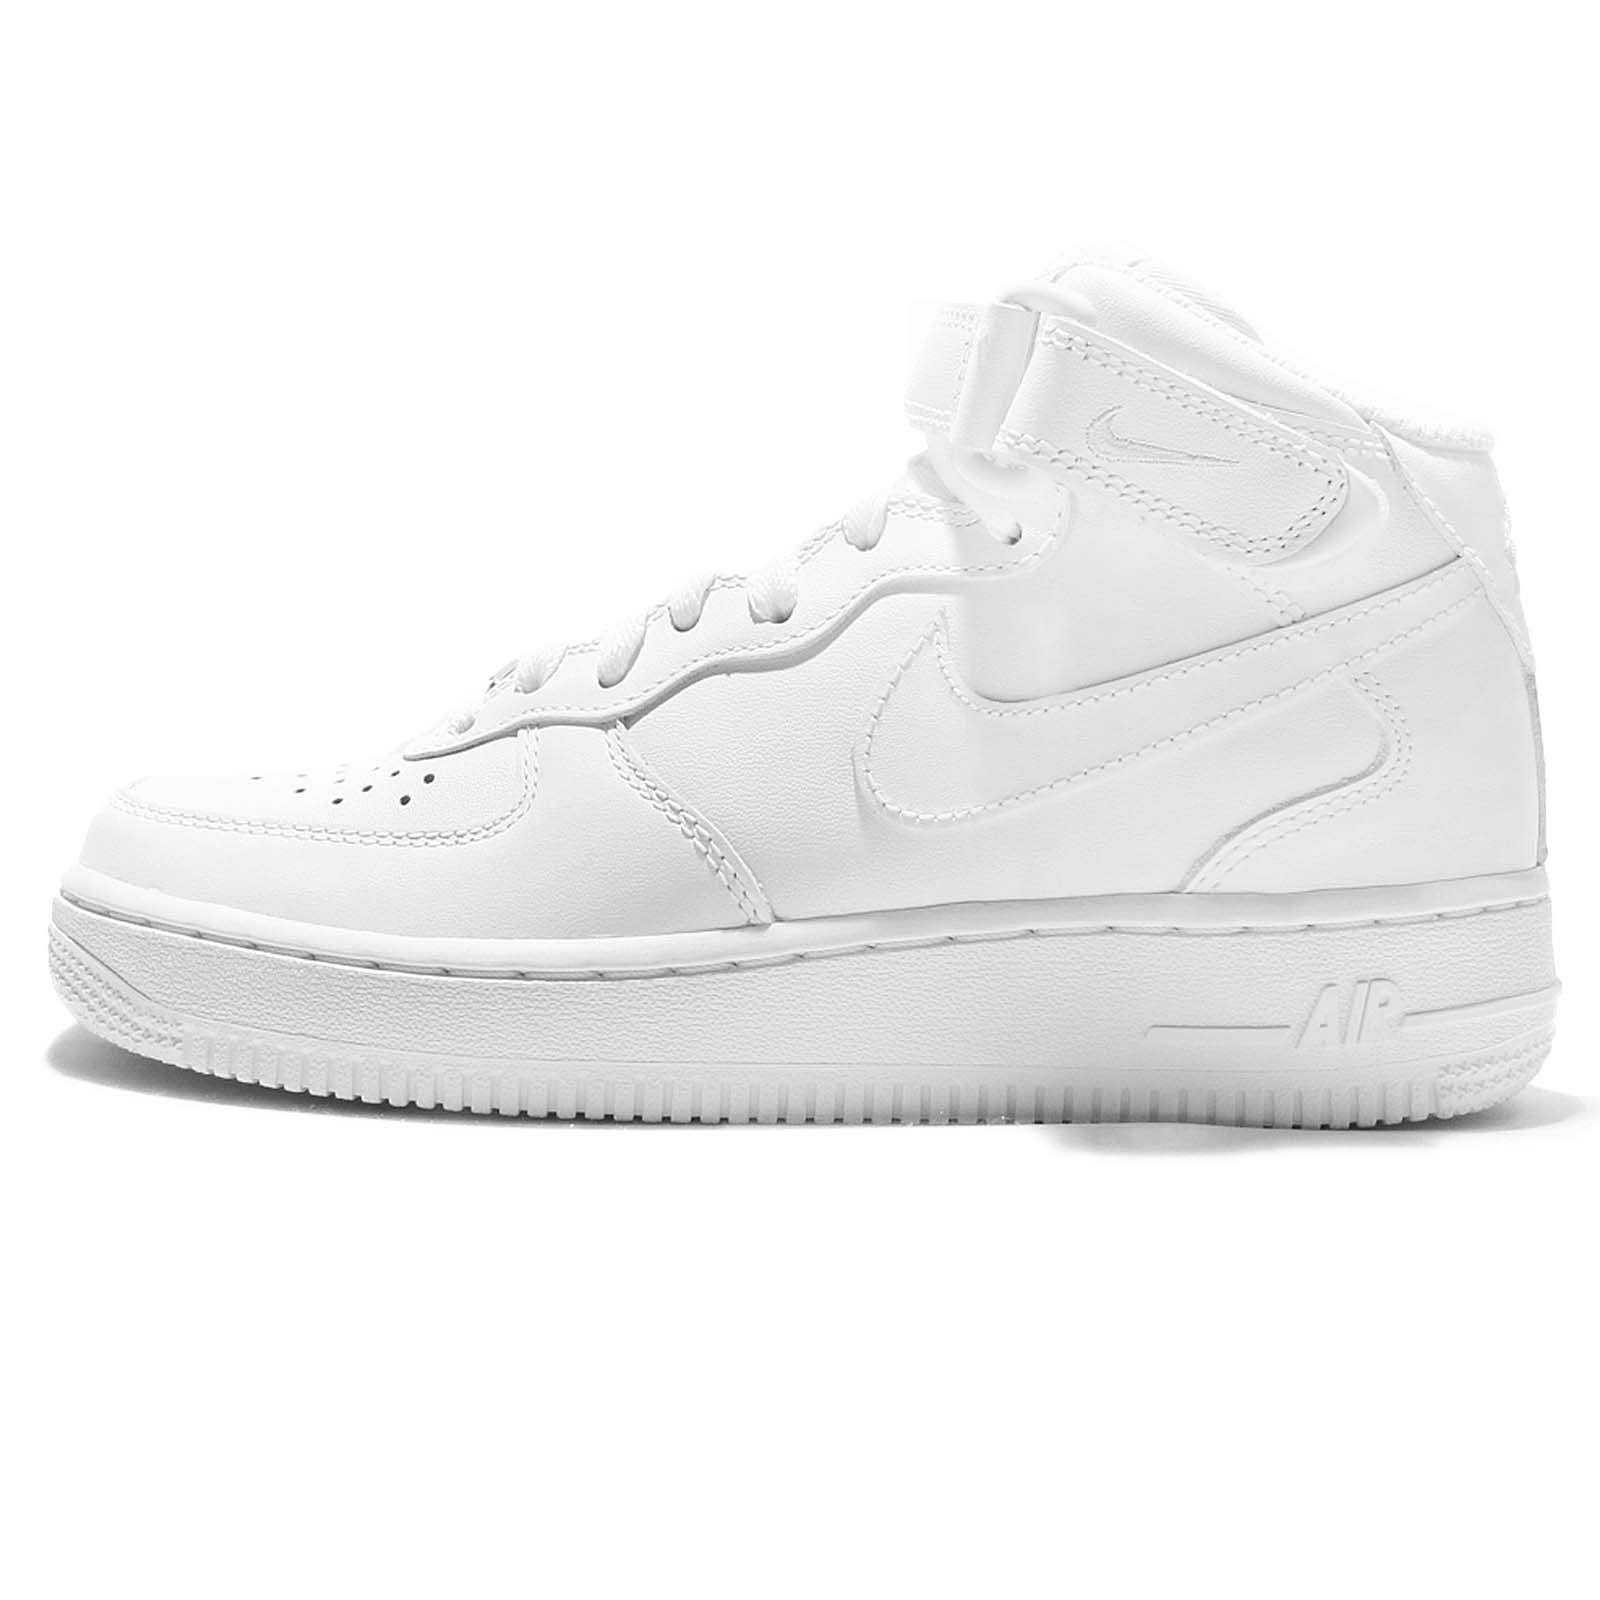 NIKE AIR Force 1 MID 07 LE WMNS Women Trainers White 366731 100 ... 9ebc20d0b